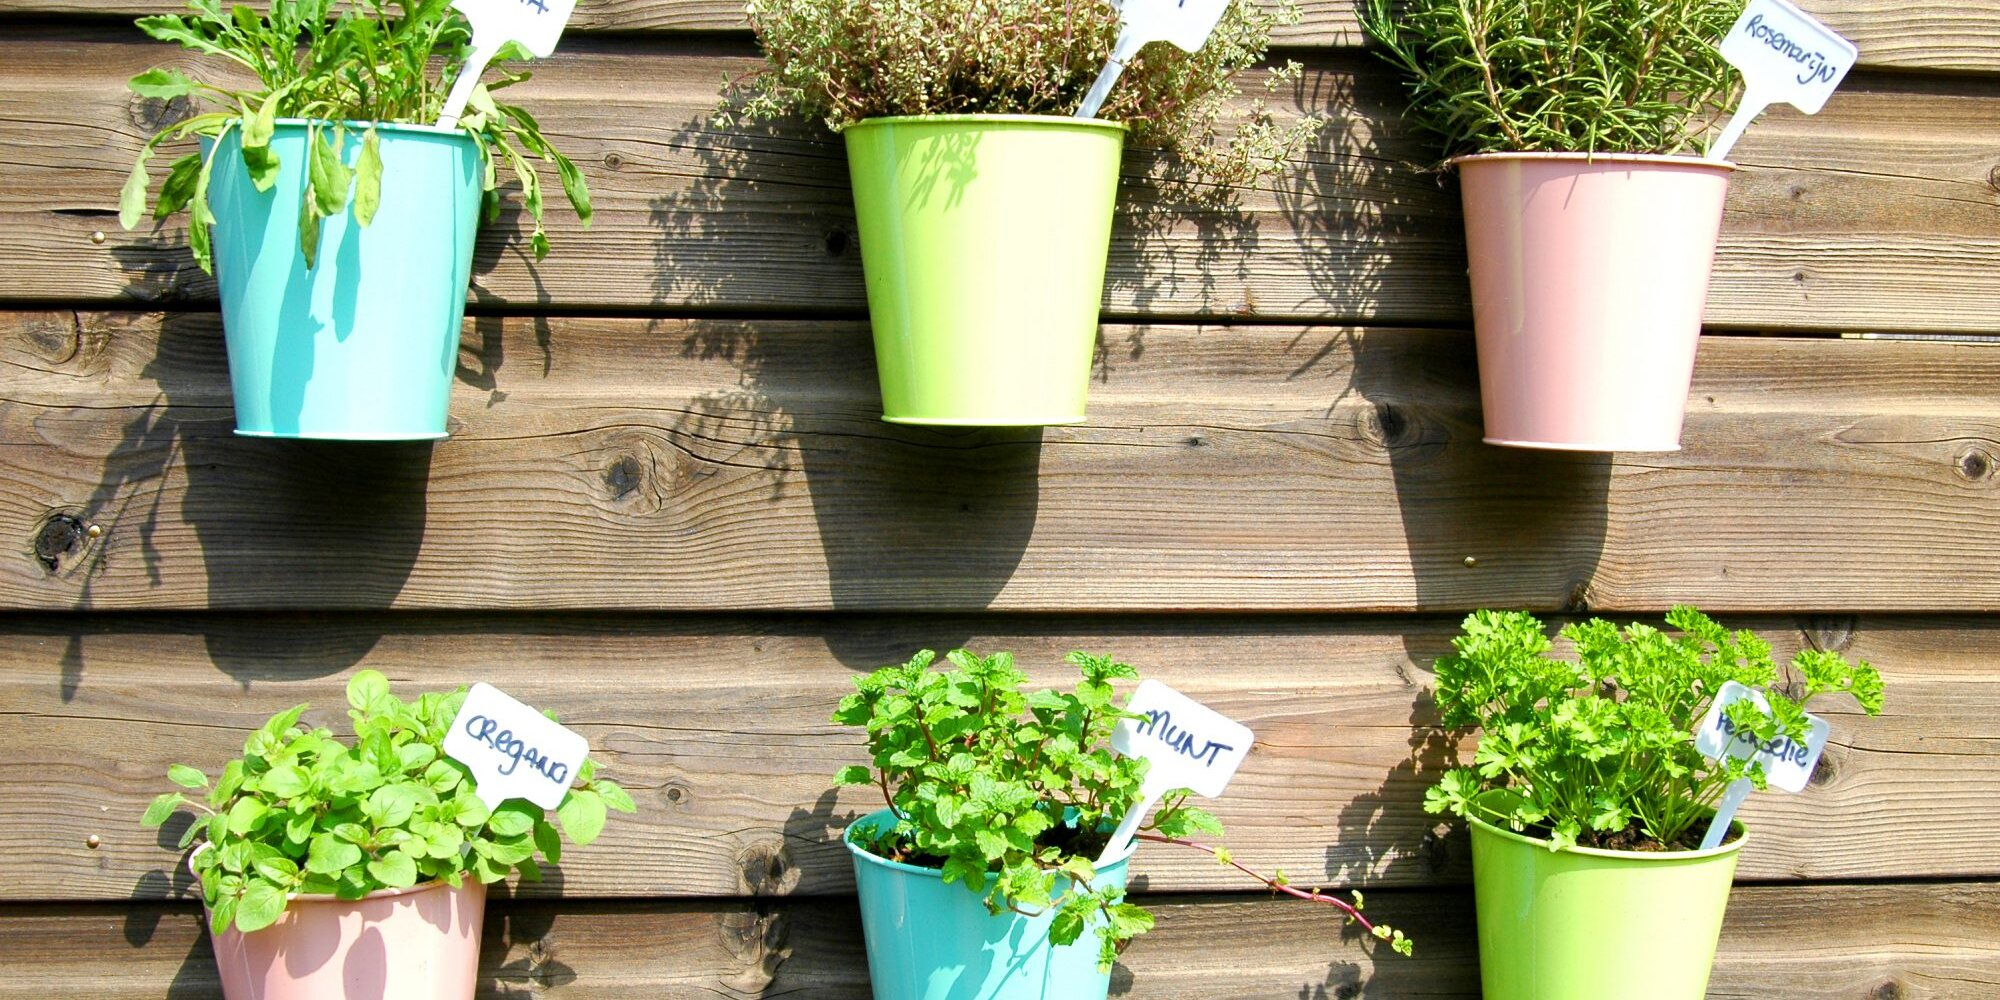 5 Herb Gardening Secrets Only the Pros Know